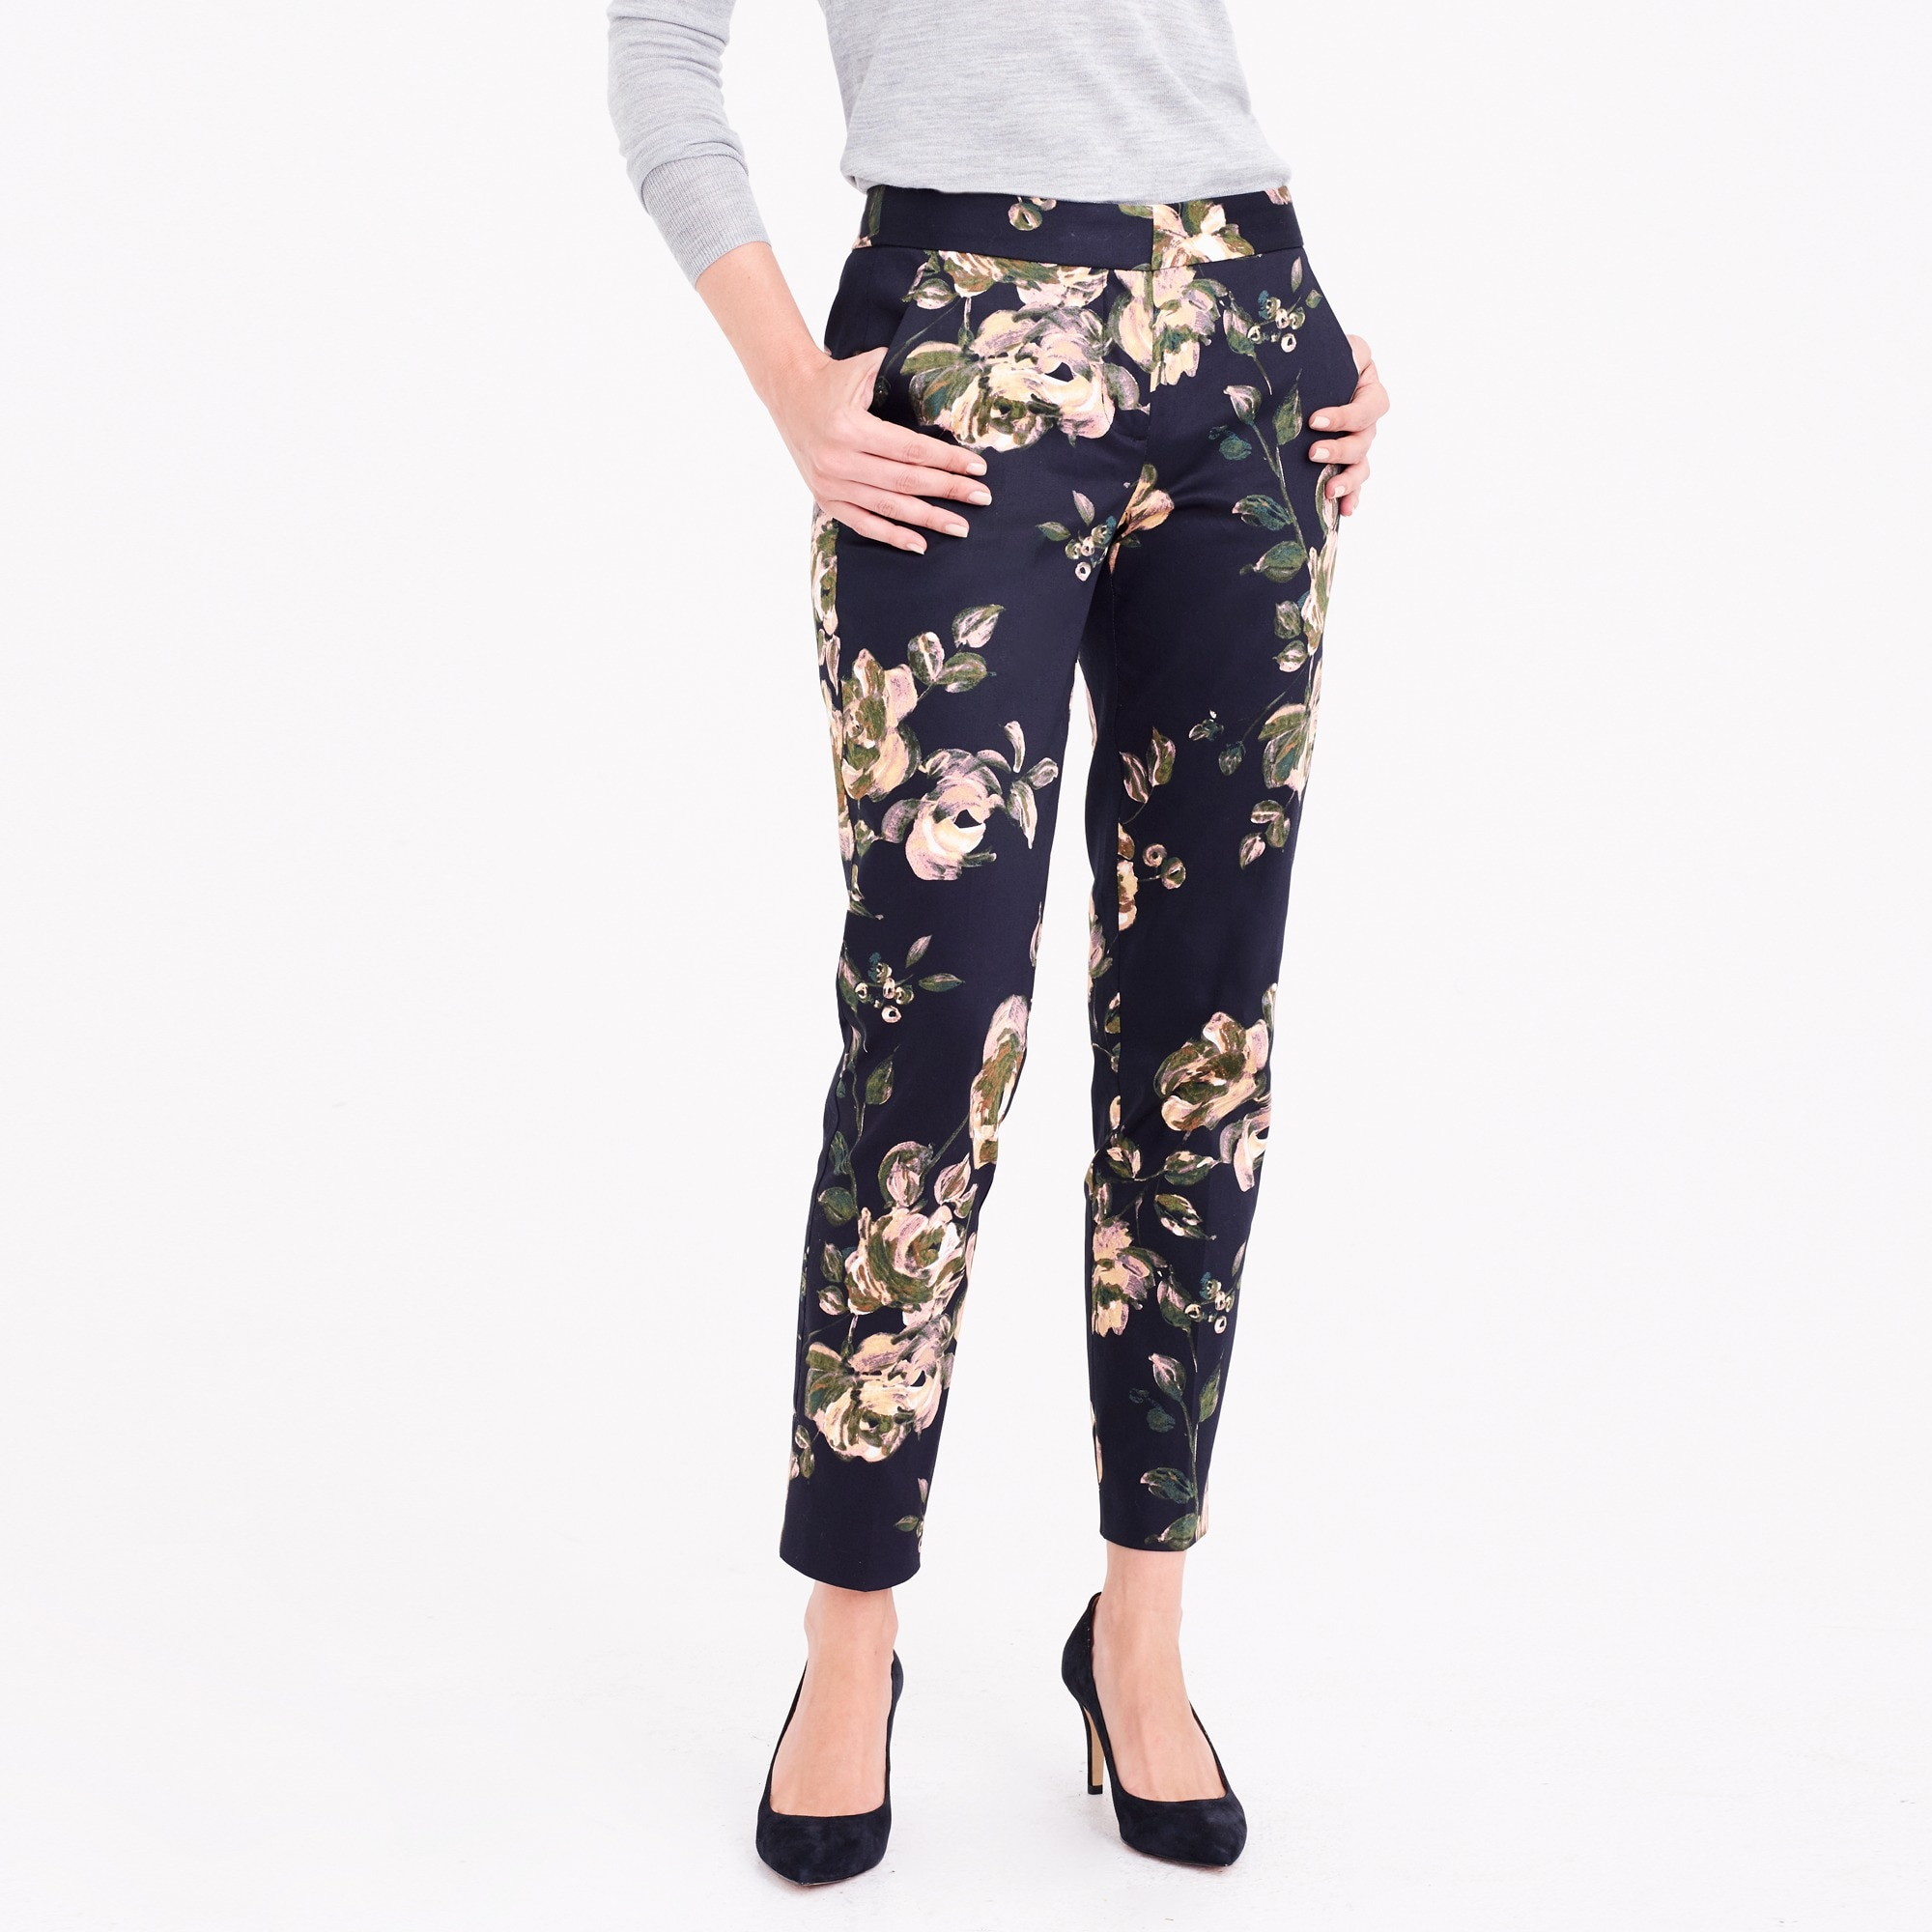 Image 1 for Slim crop printed pant